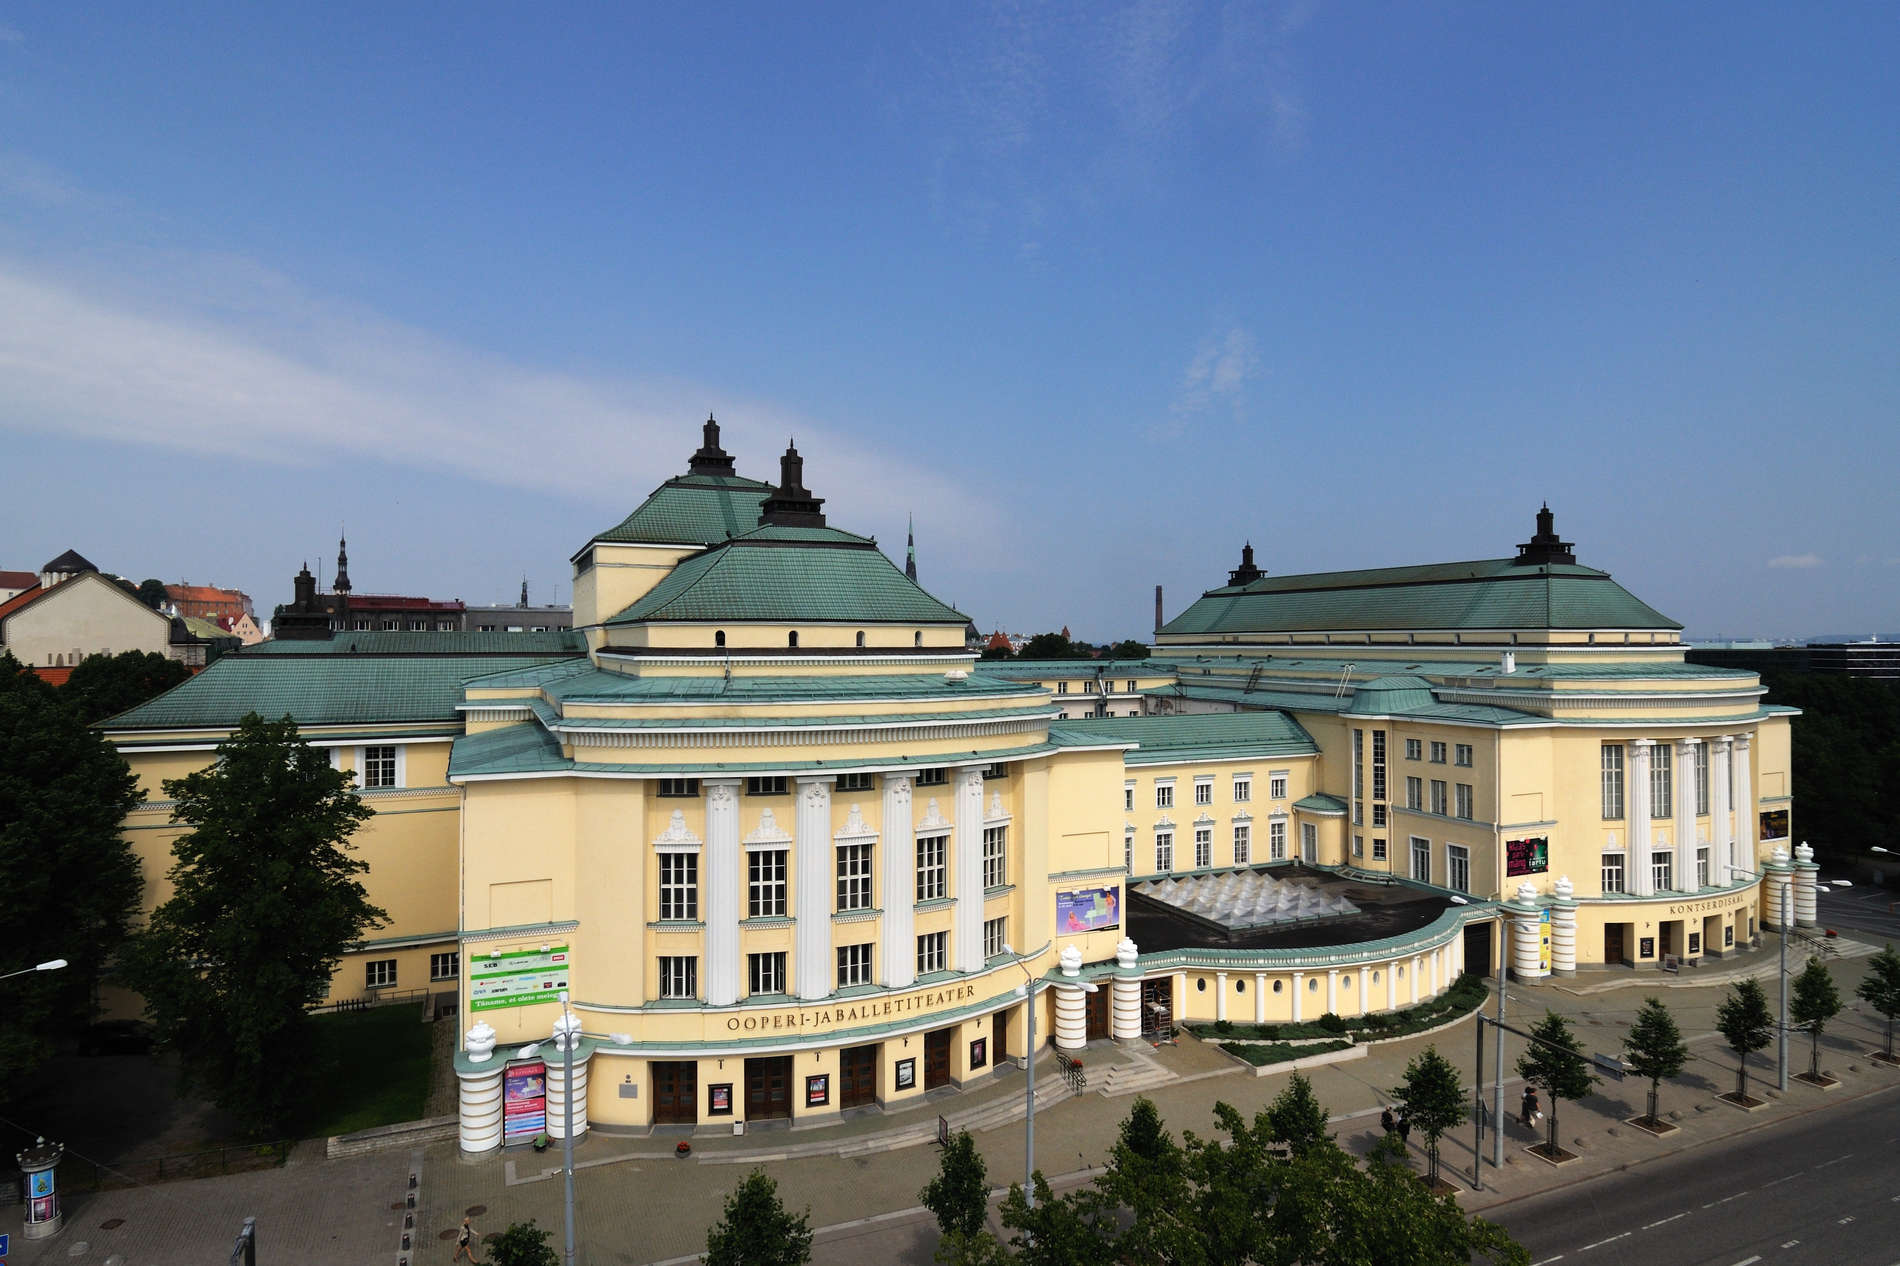 Estonian National Opera House in Tallinn, Estonia